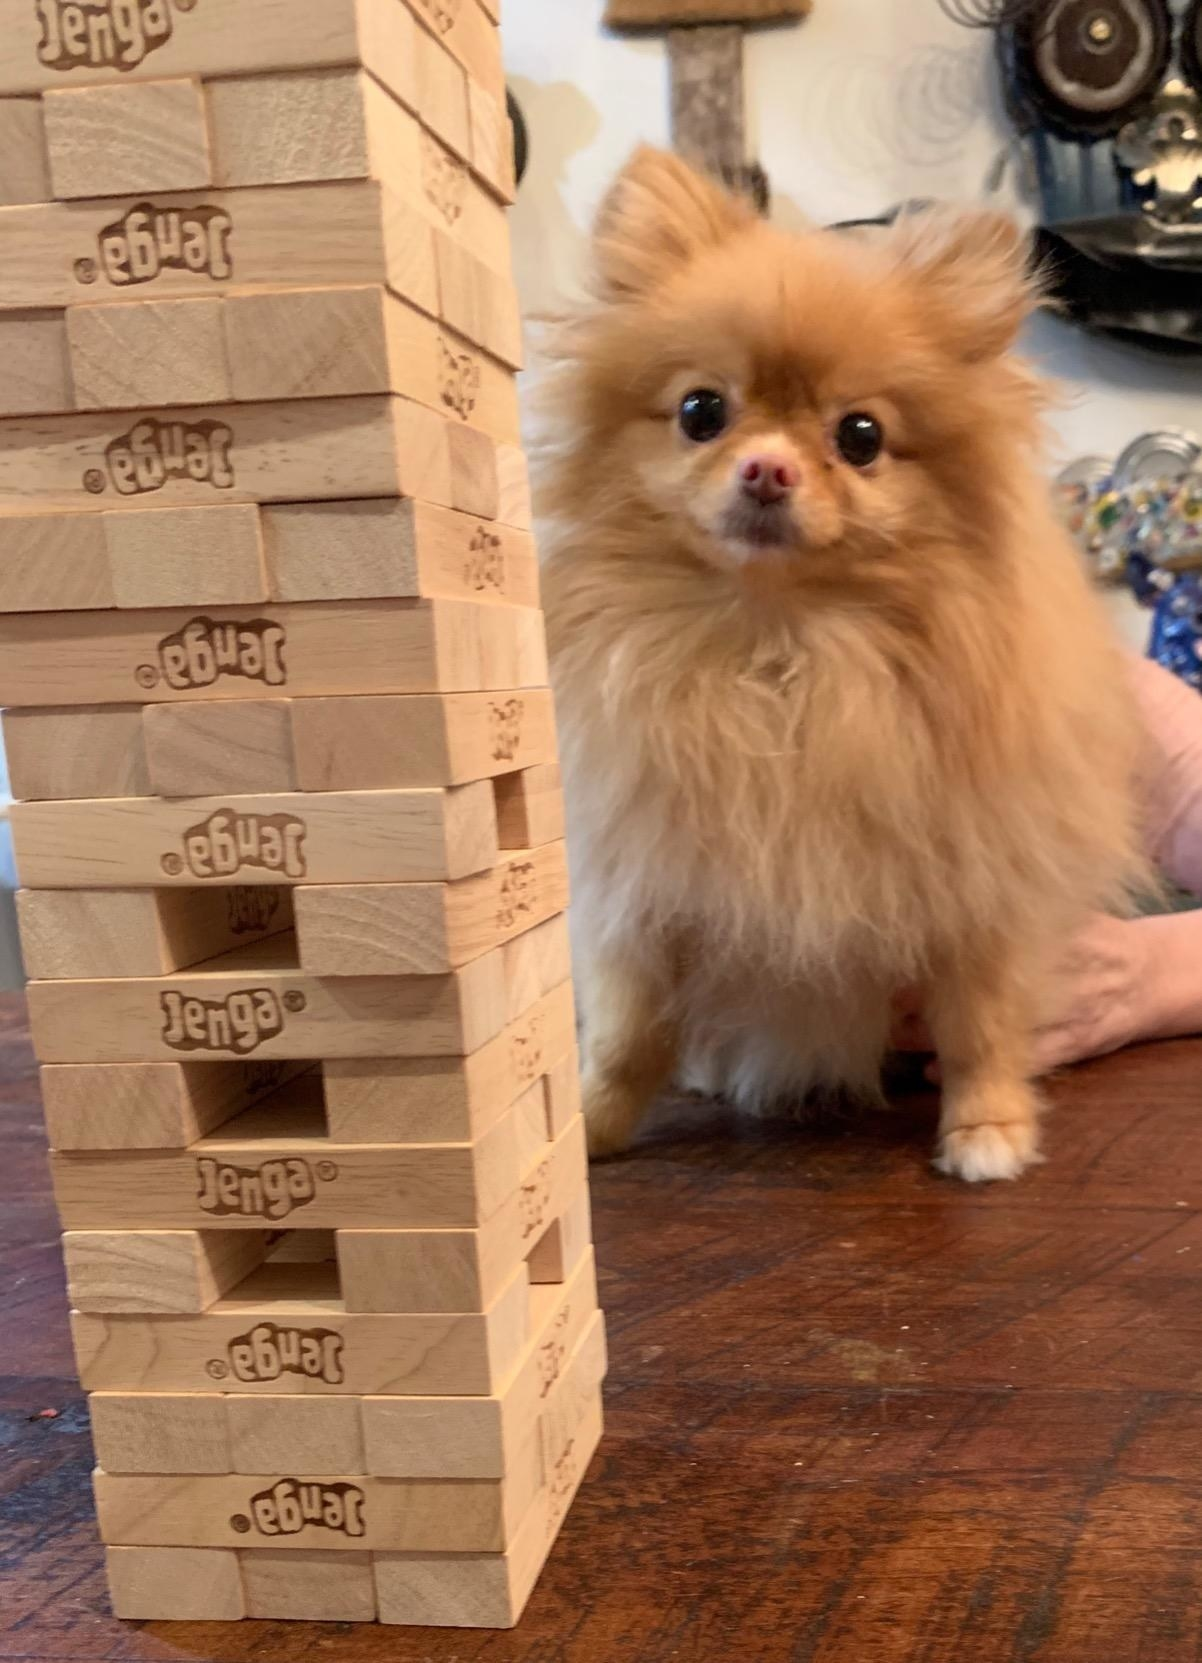 Reviewer photo of their Jenga stack